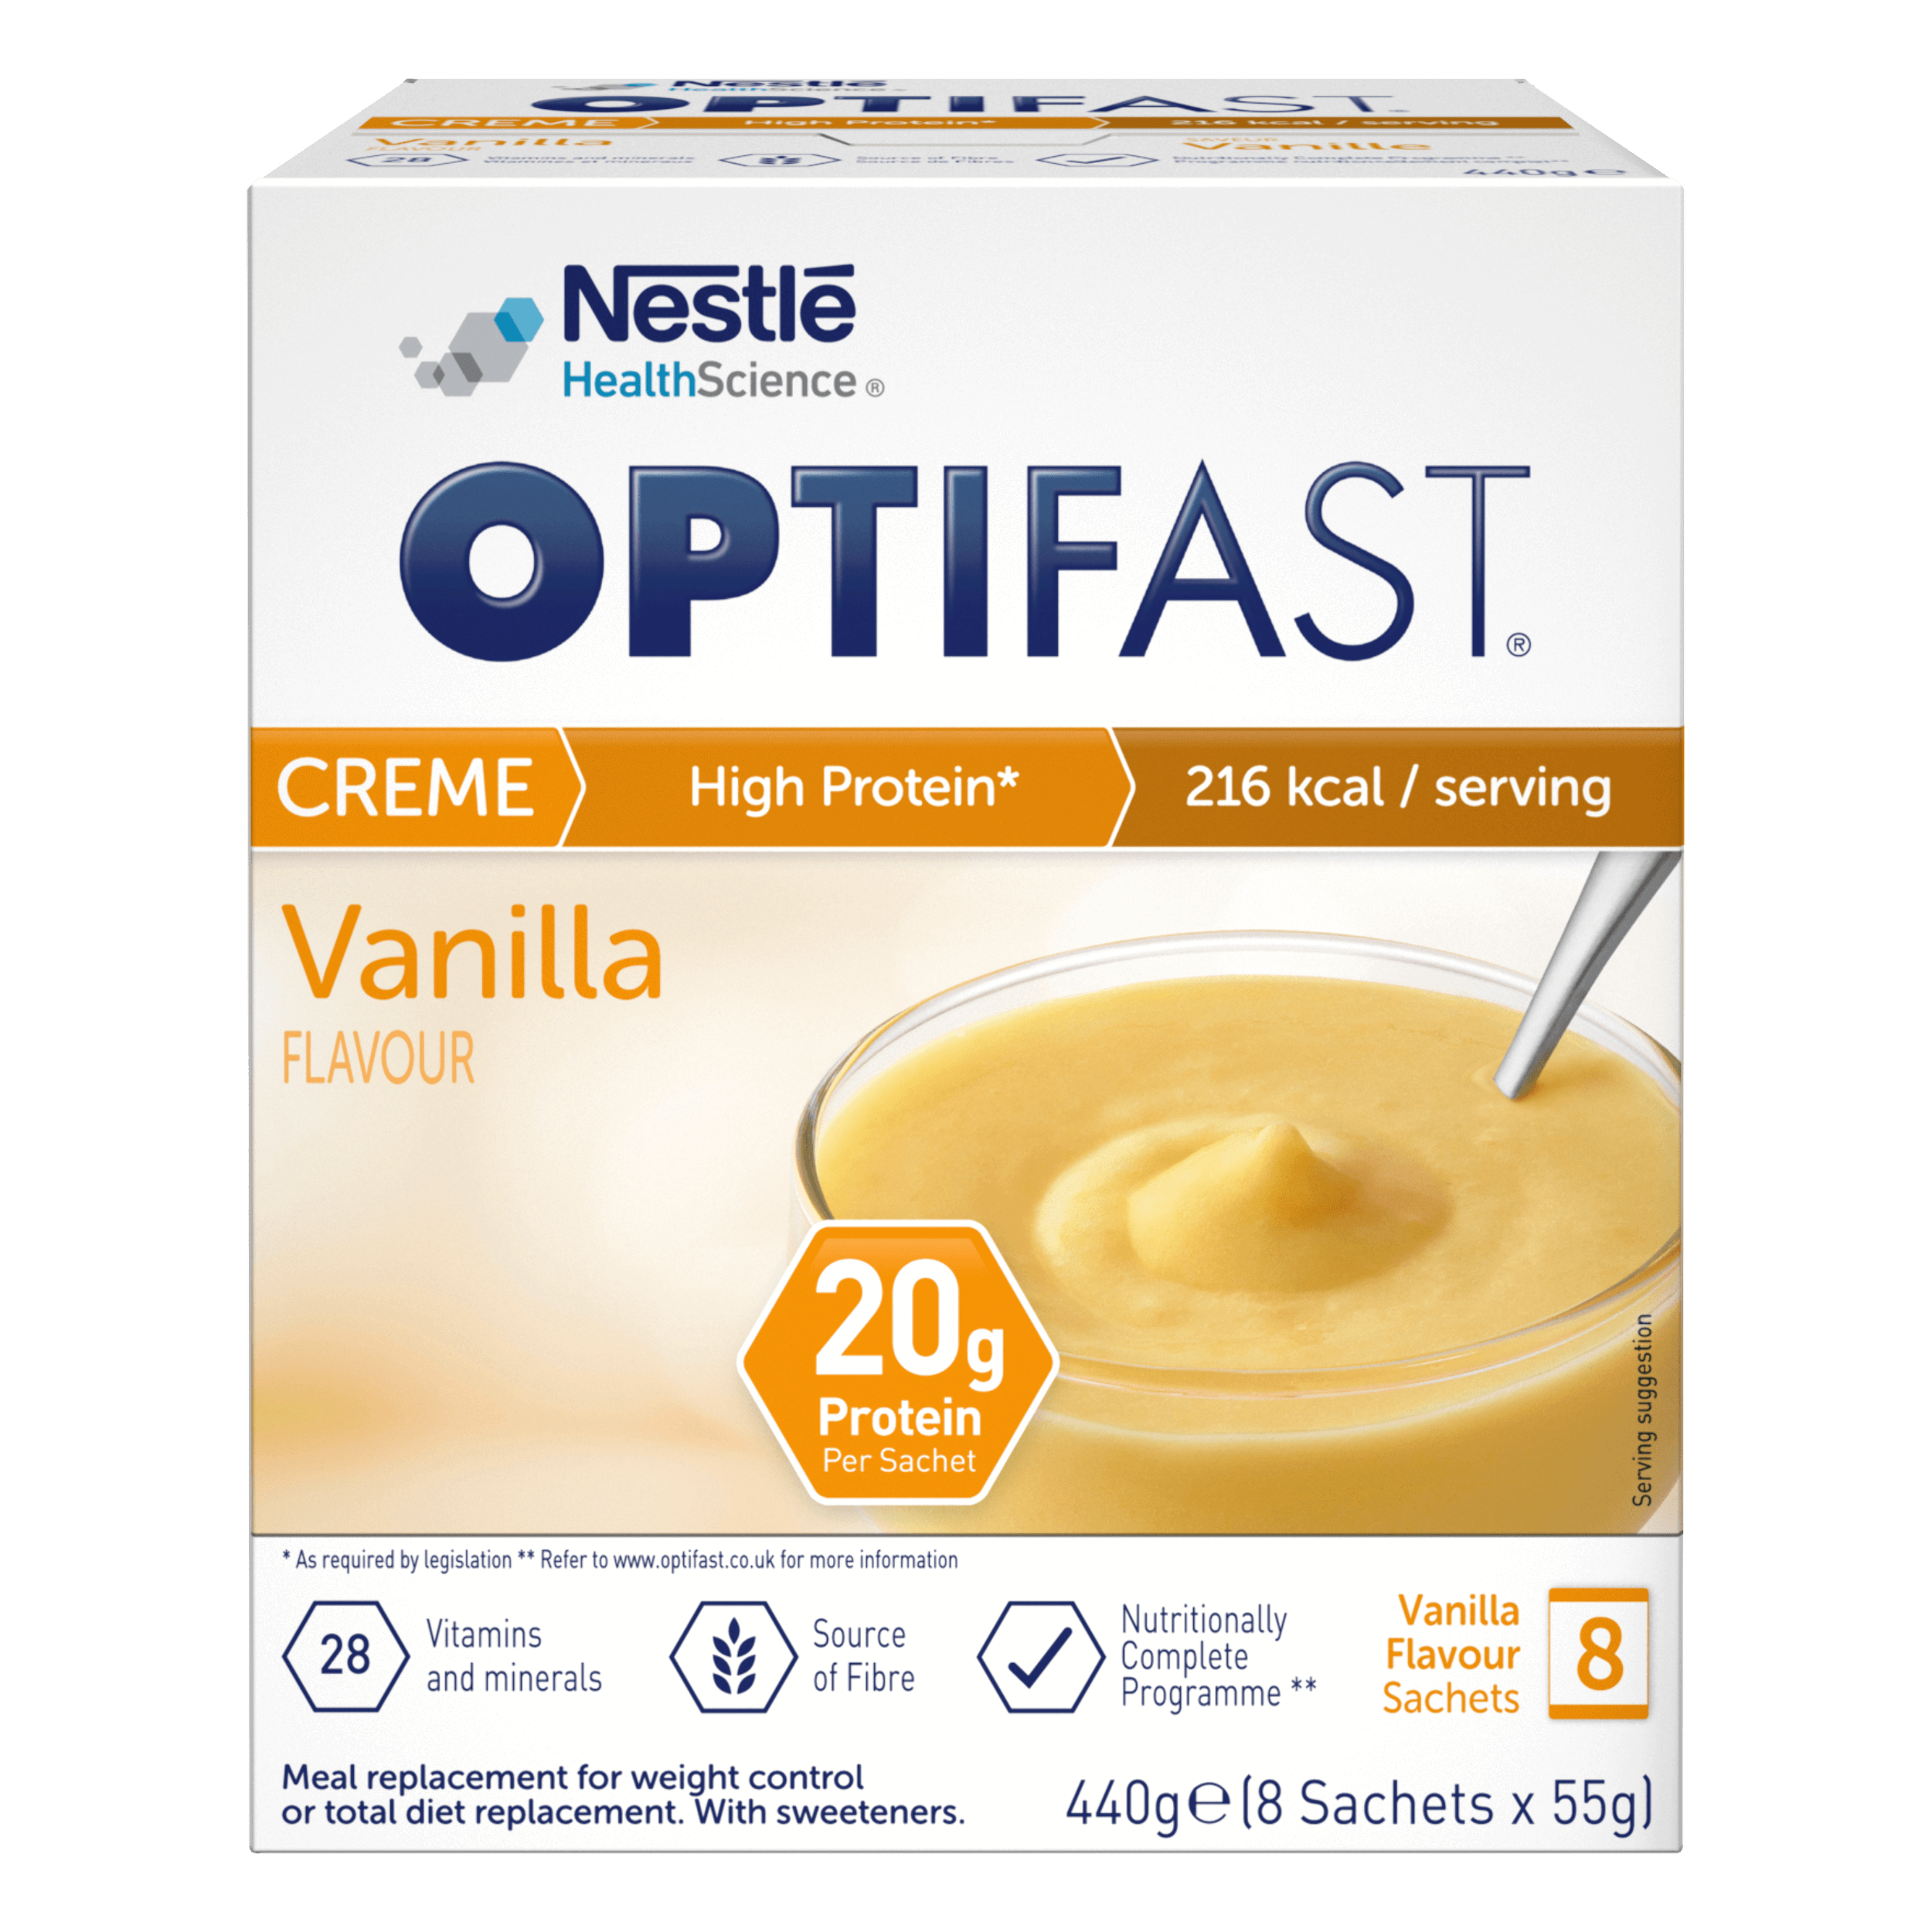 Image of the vanilla flavour OPTIFAST creme